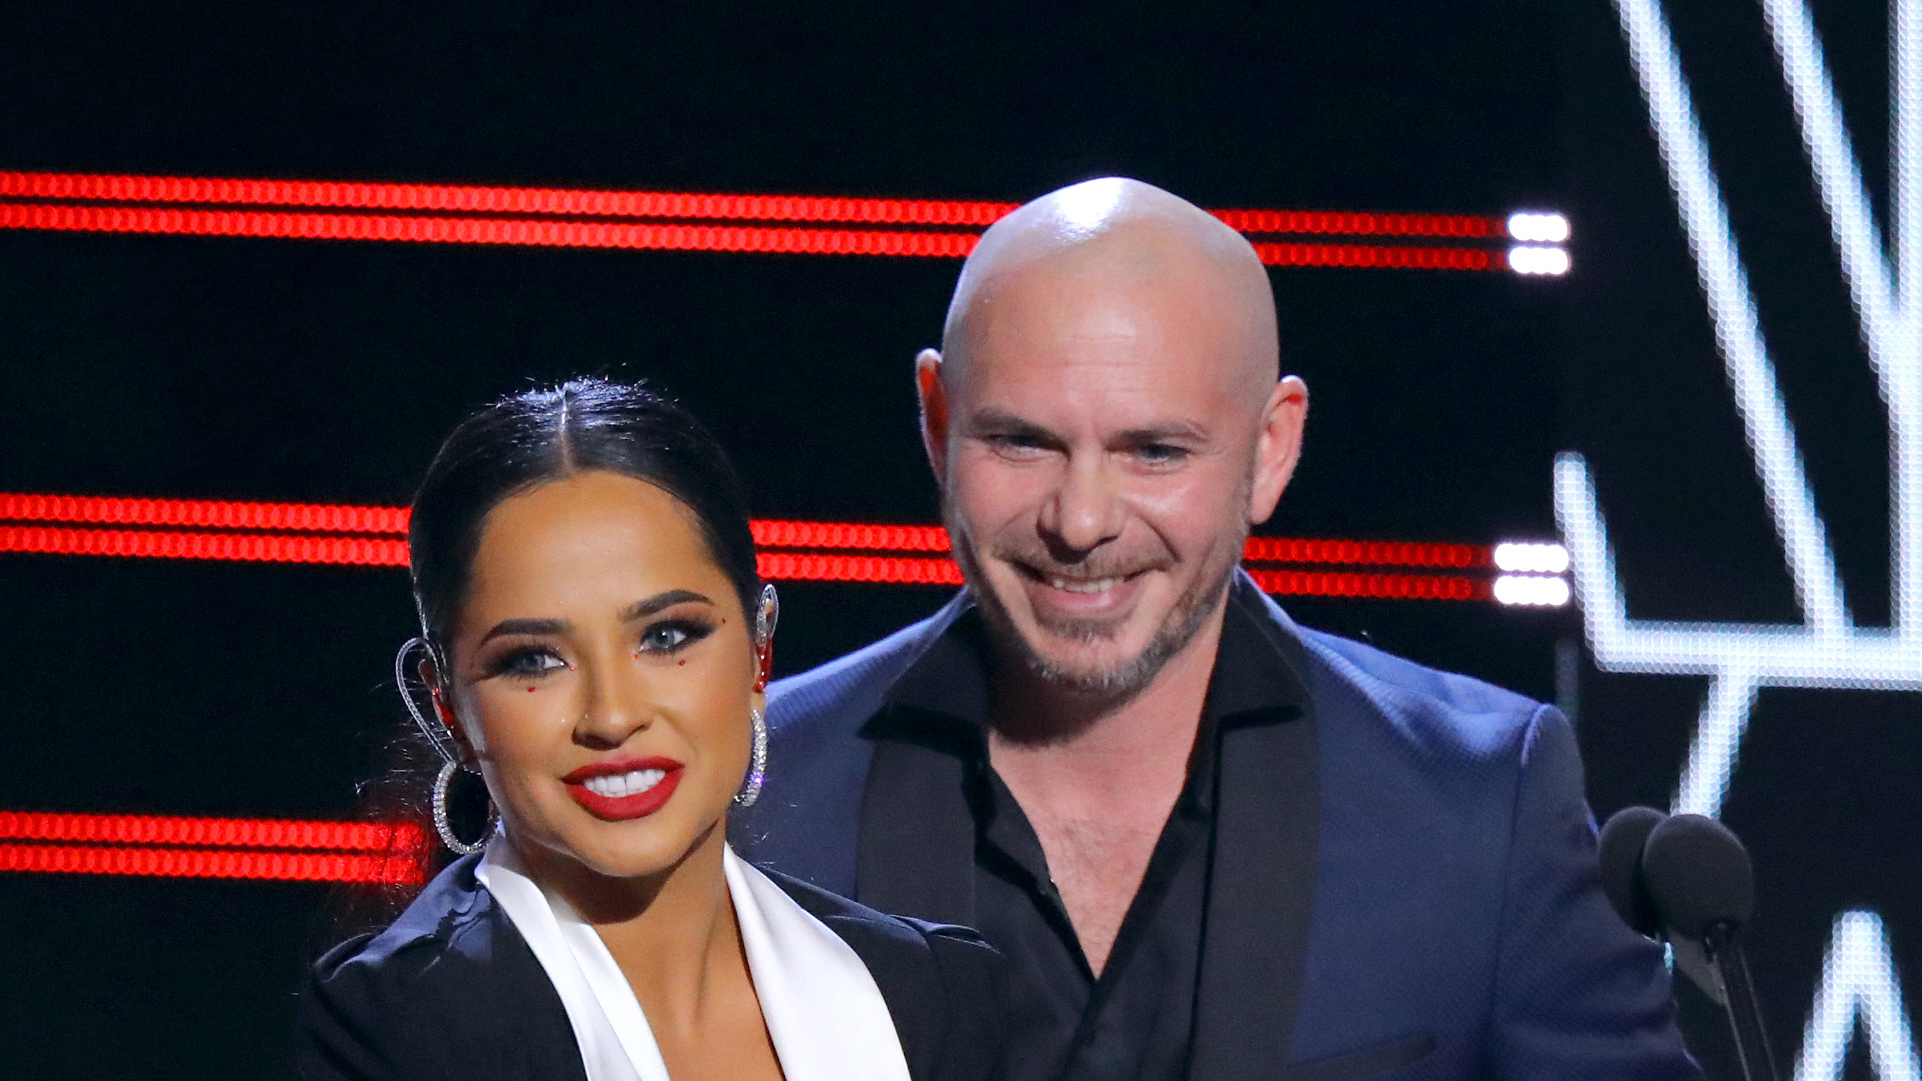 Pitbull and Becky G